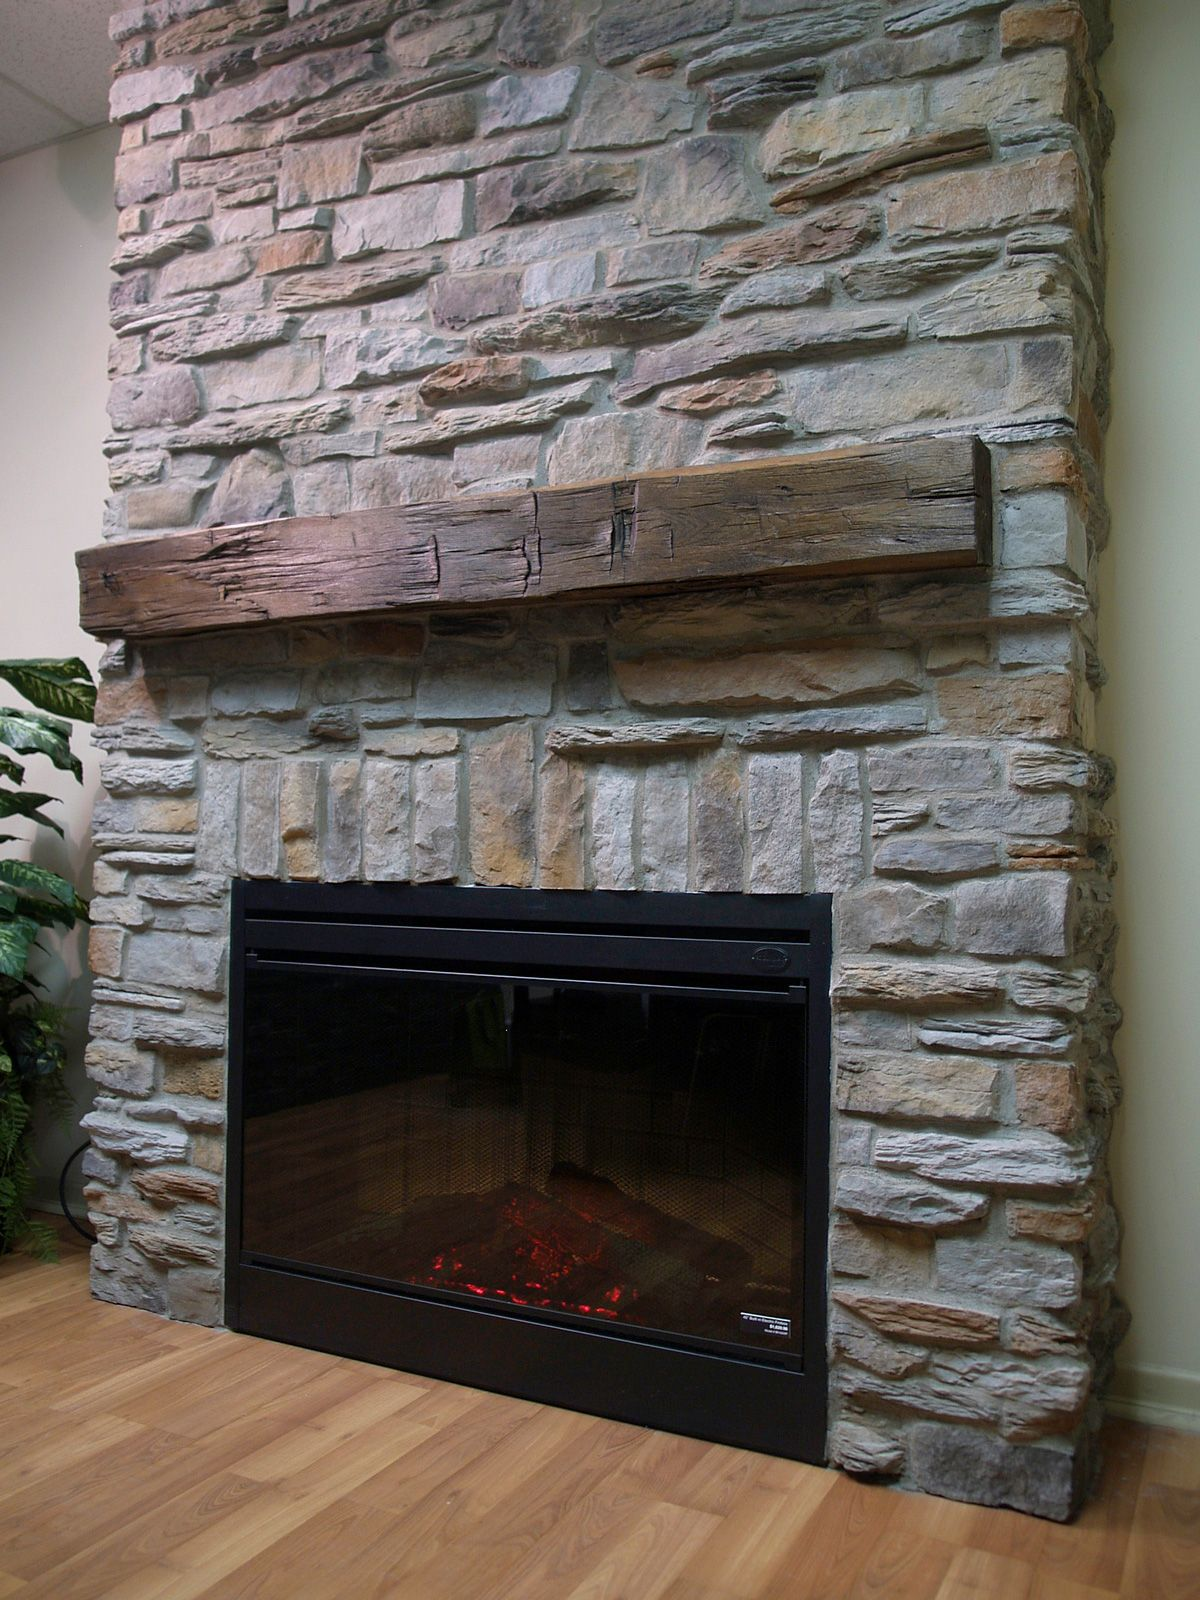 Tile Fireplaces Design Ideas tile fireplaces design ideas Inspiring Rock Fireplace Design Ideas With Wooden Flooring Decoration